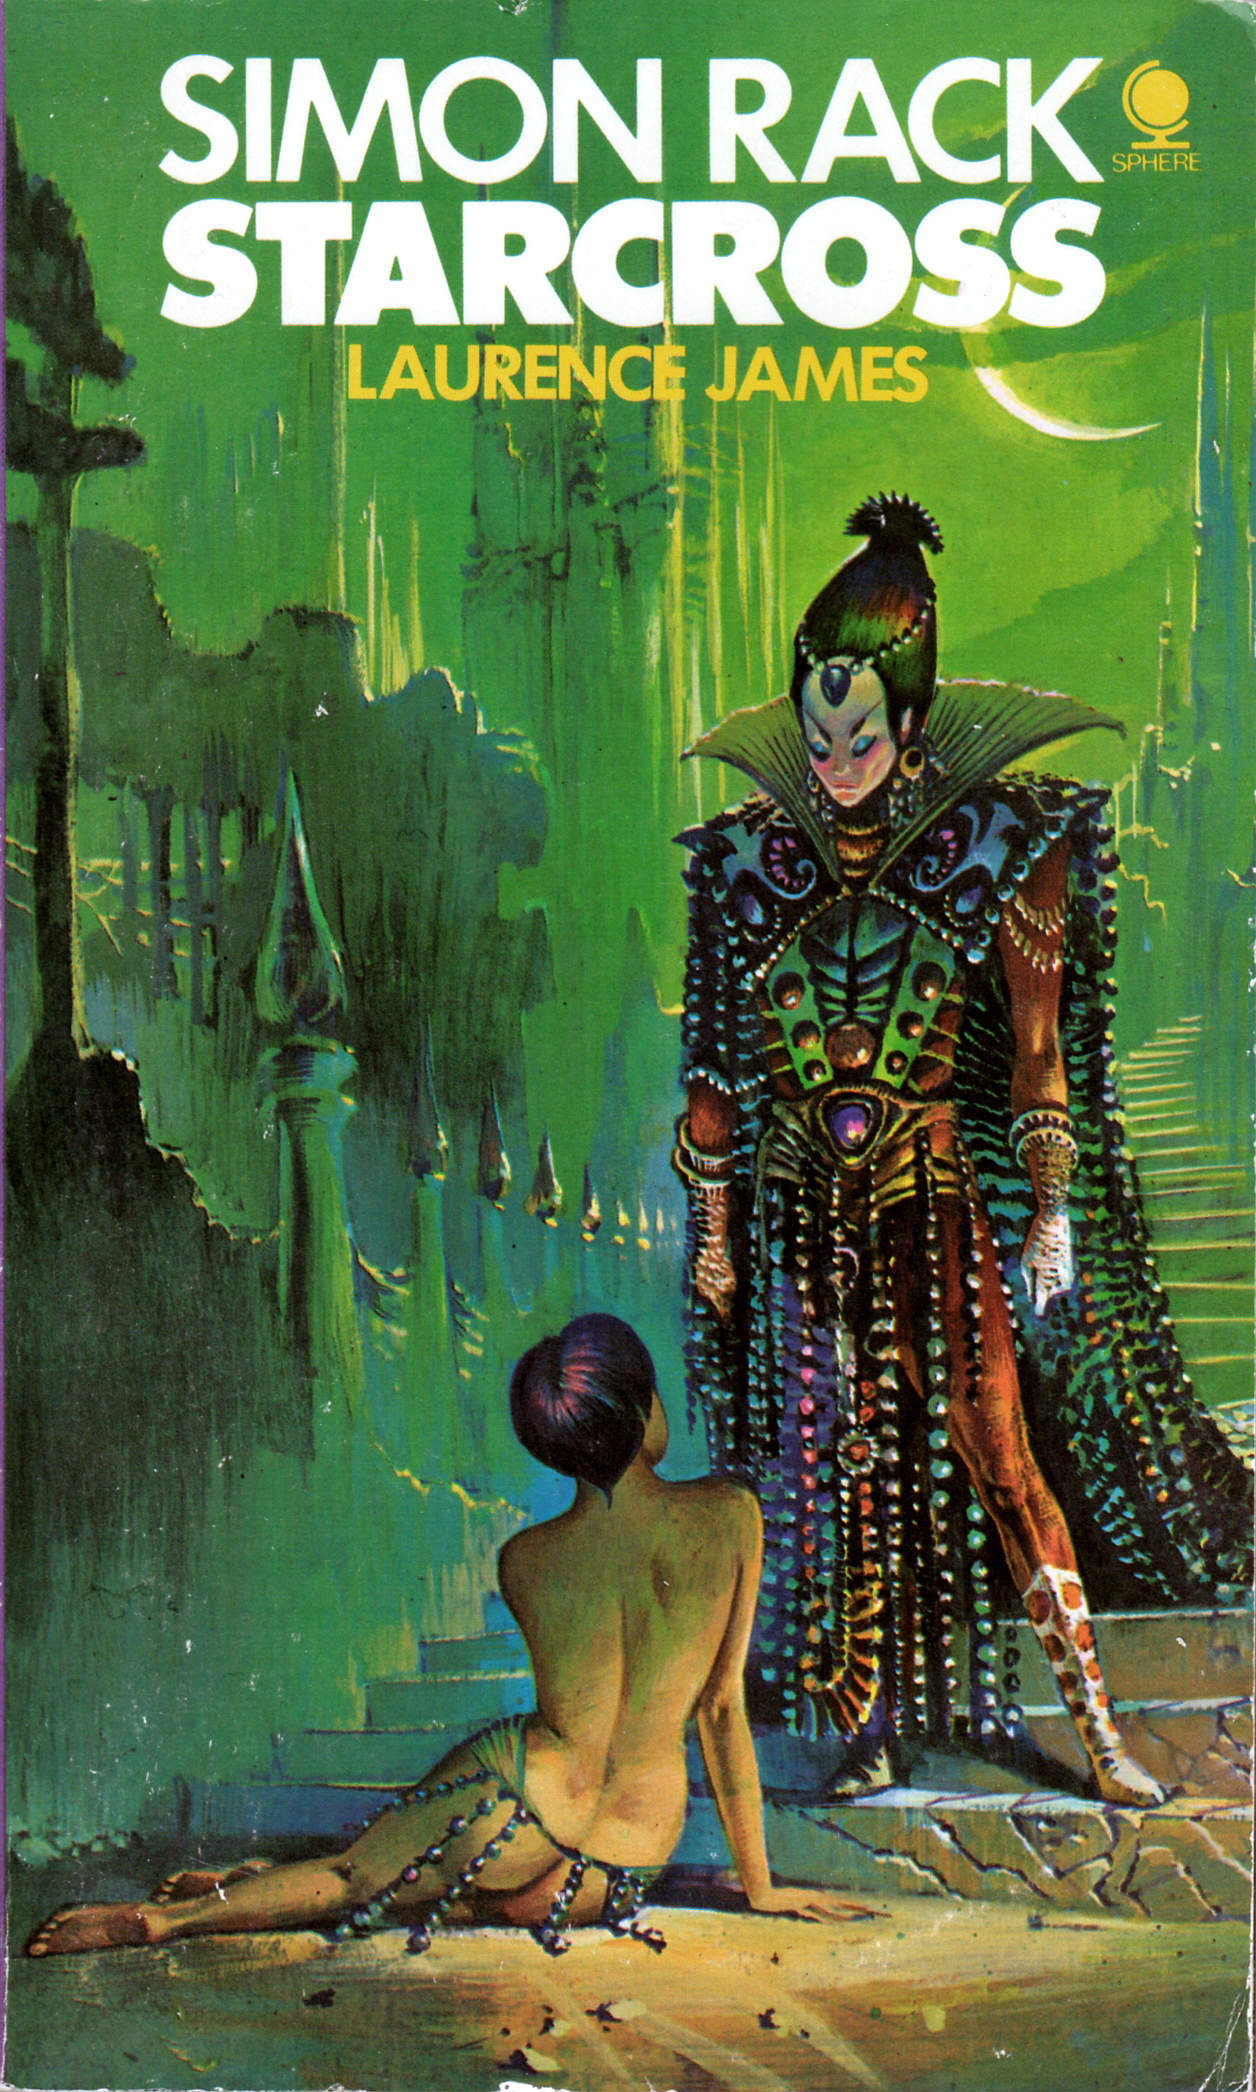 Book Cover Art : Look here five paperback covers with art by bruce